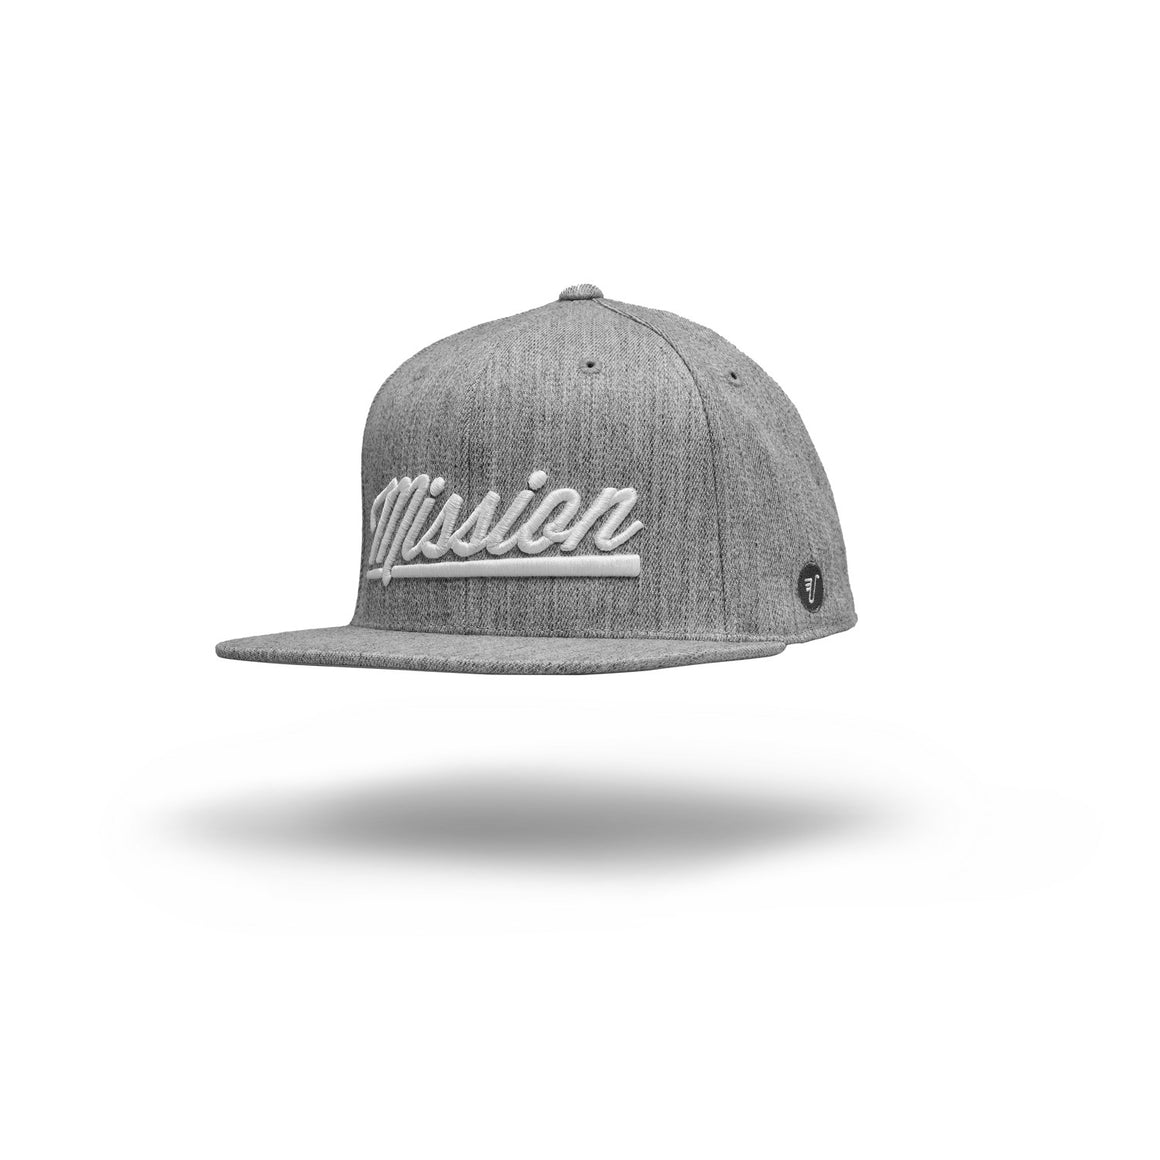 Mission Classic Hat - Heather Gray